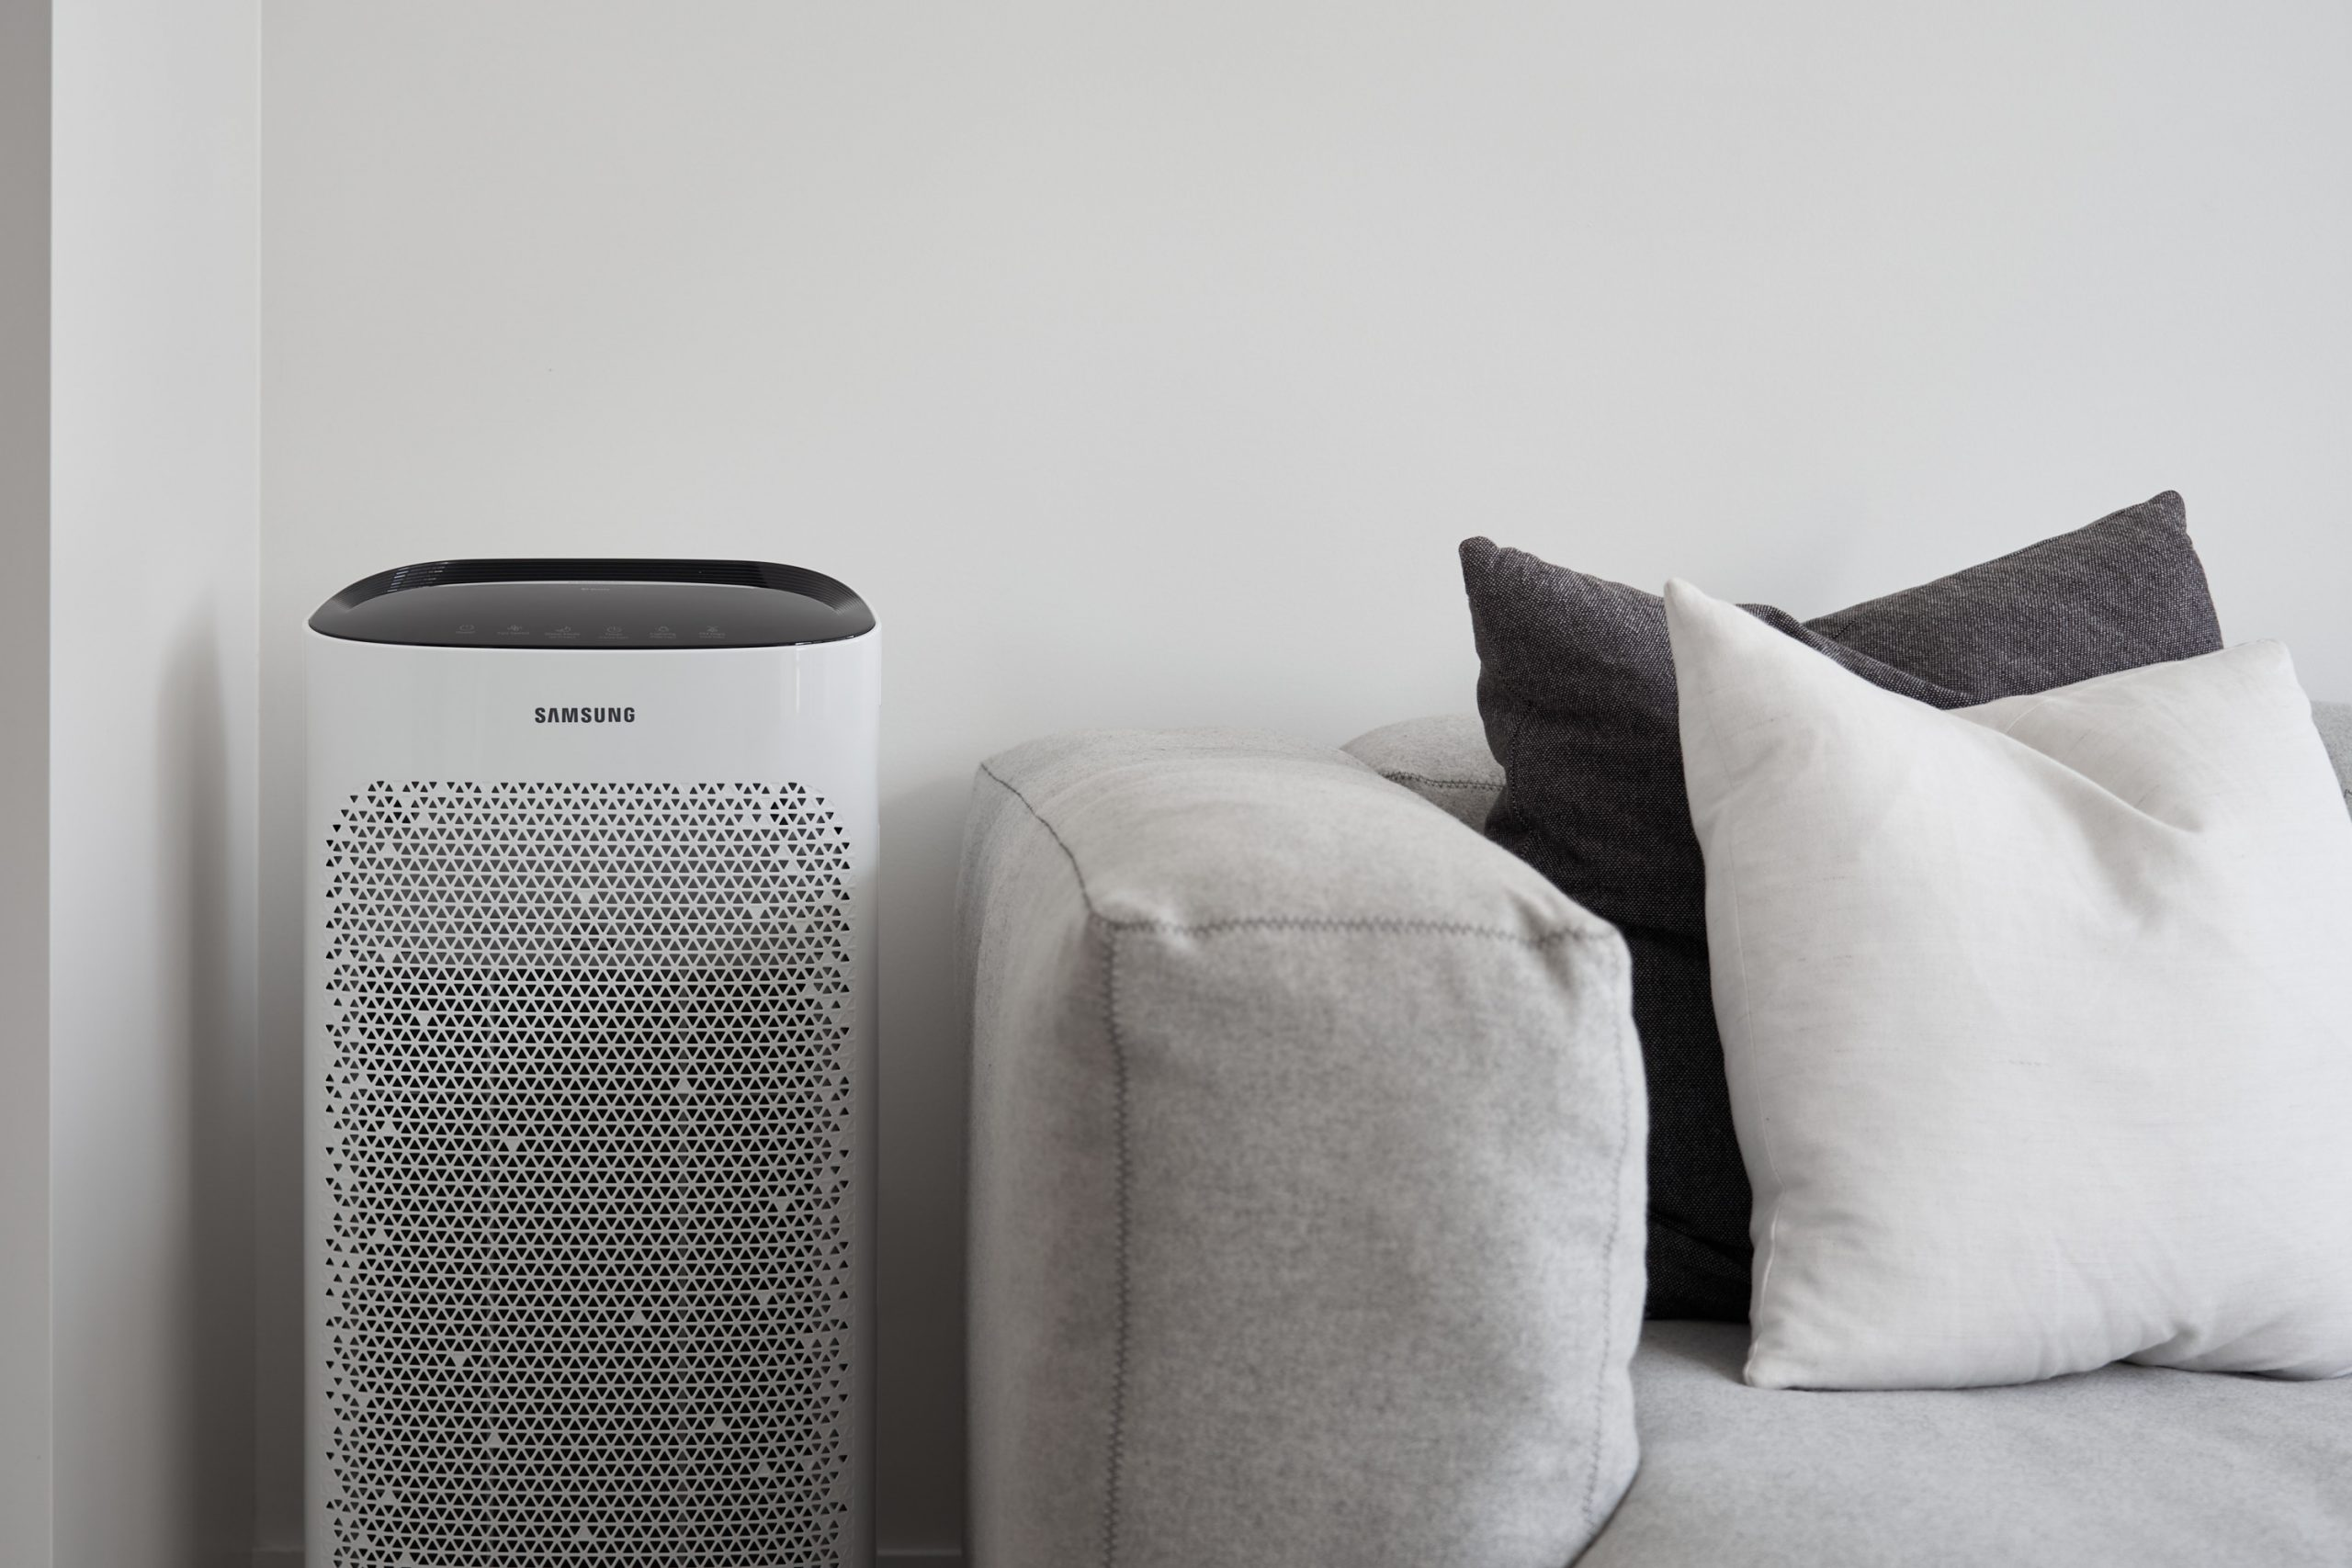 How To Get A Good Night's Sleep - Samsung Air Purifier - HEY GENTS